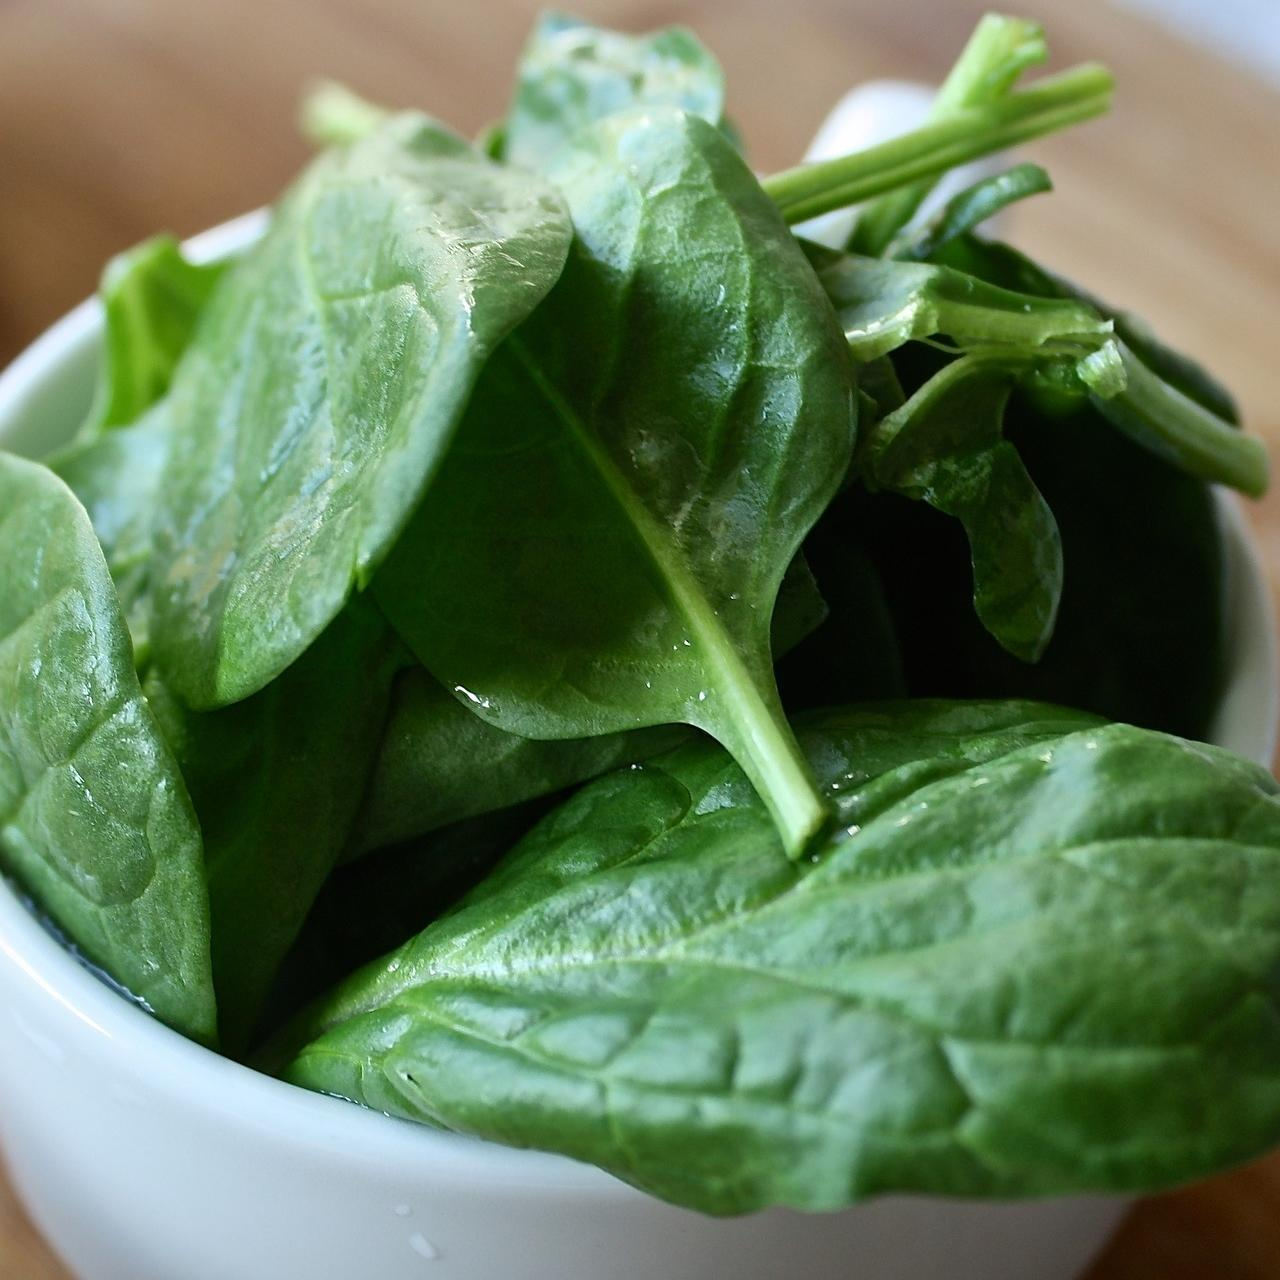 200g bag of Spinach